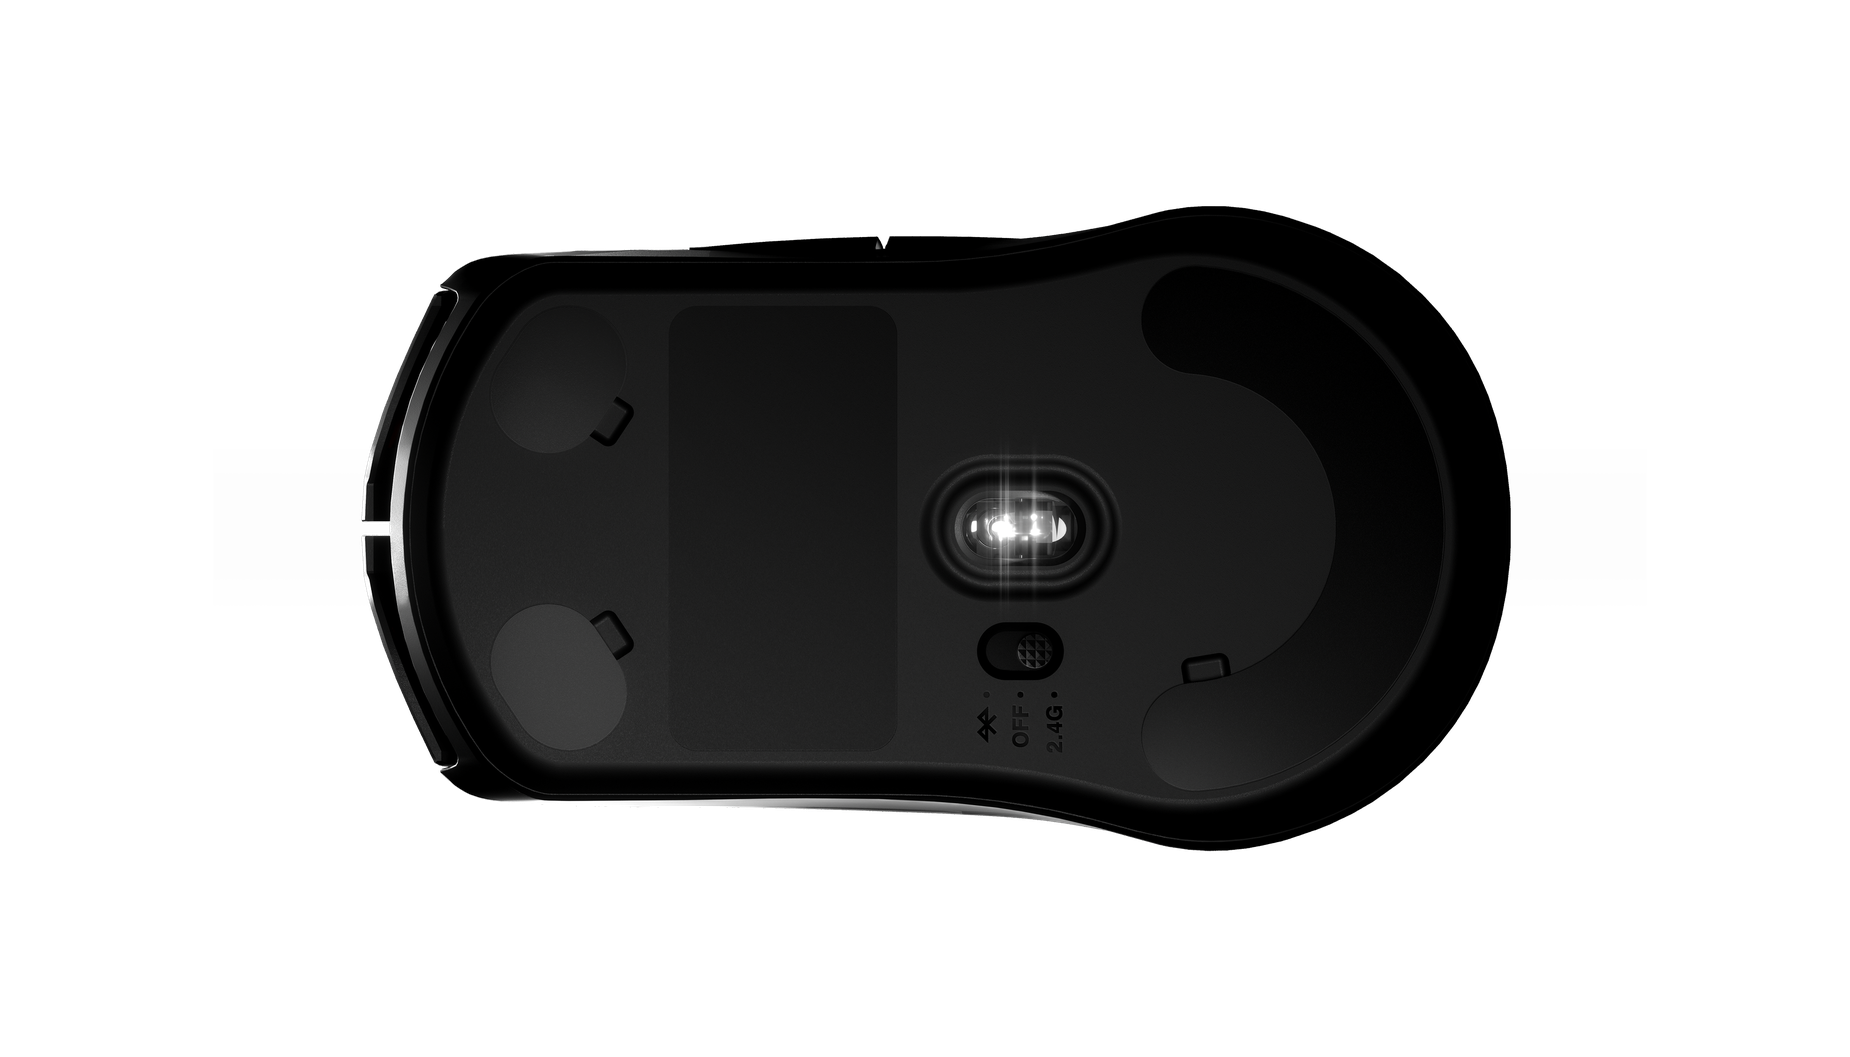 Bottom of the mouse to display sensor and foot pad placement